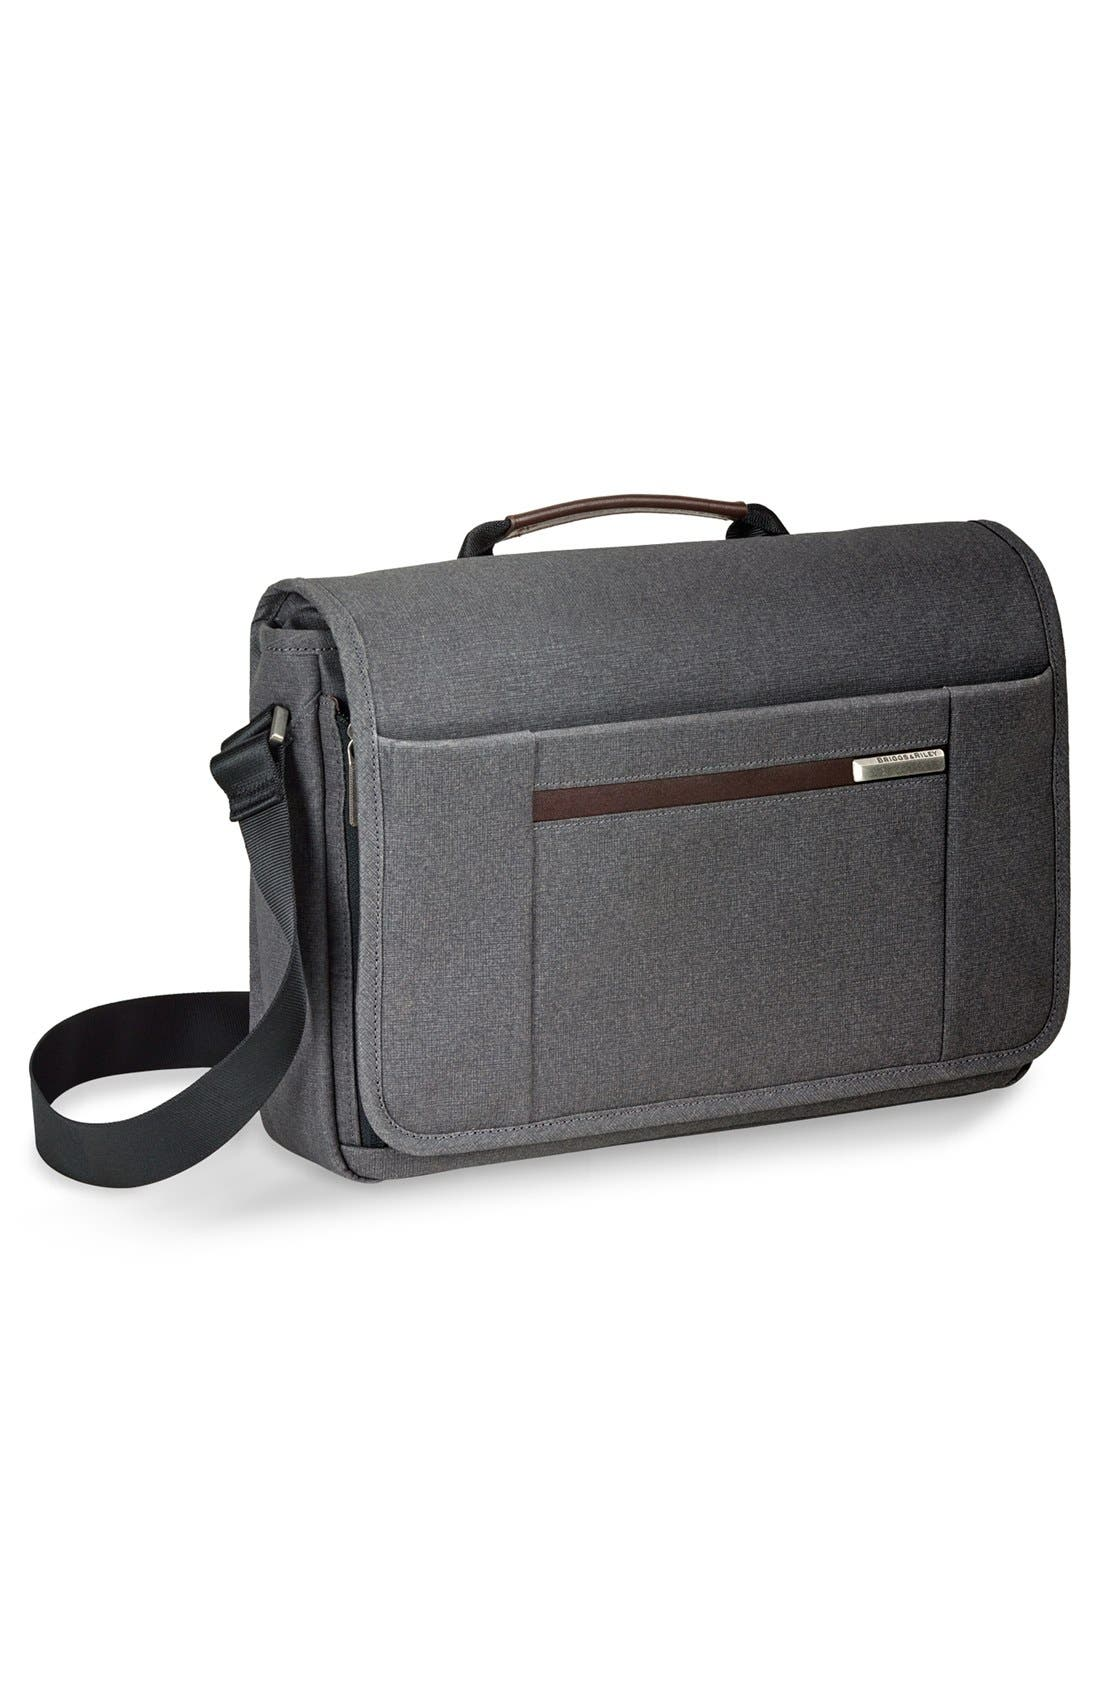 'Kinzie Street - Micro' Messenger Bag,                             Alternate thumbnail 3, color,                             Grey